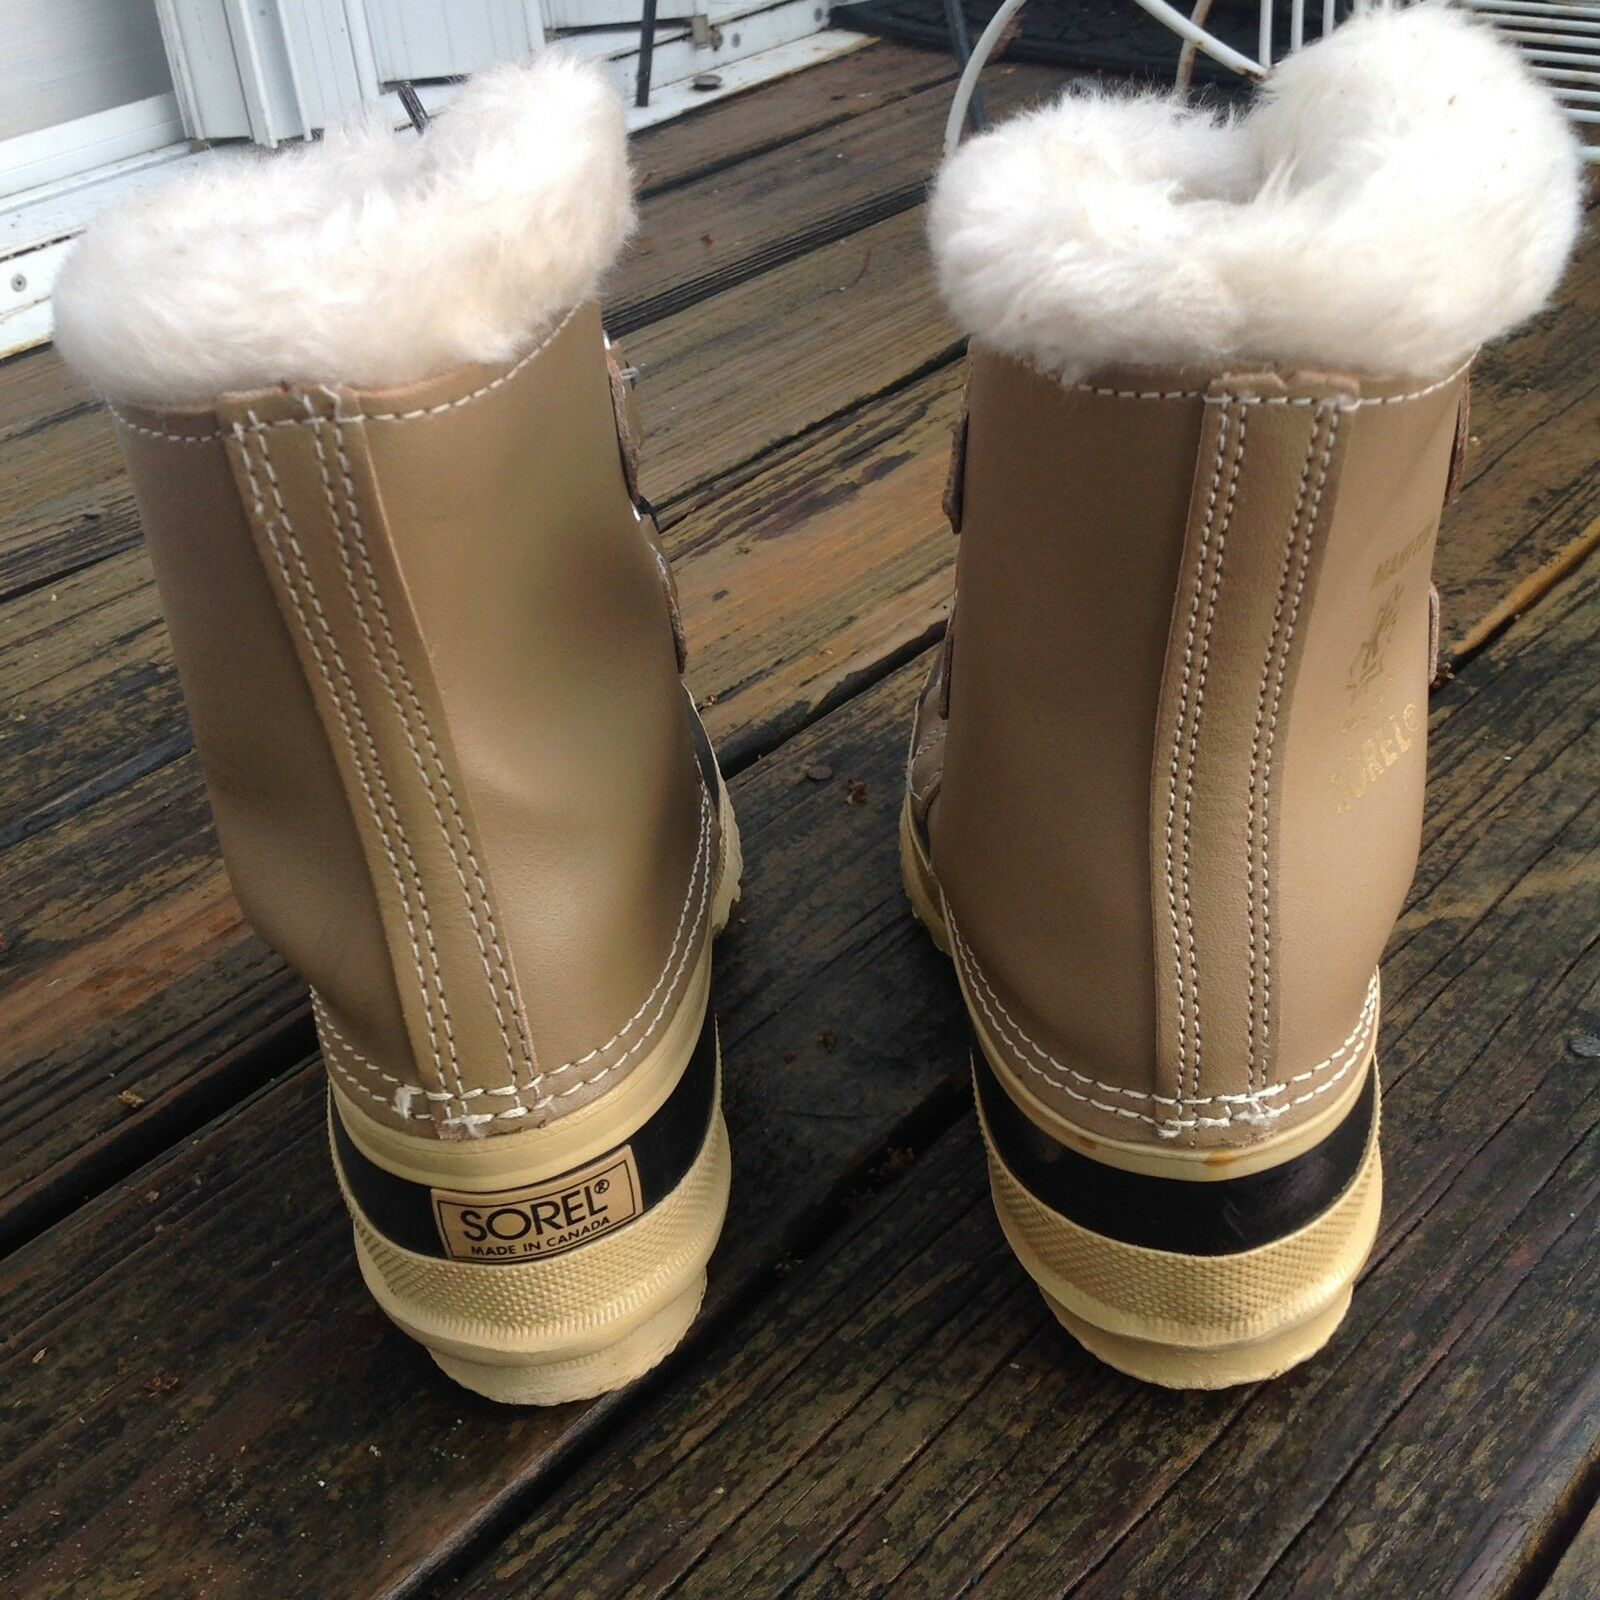 Sorel Stiefel damen Sz 5 Tan braun Leather Faux Faux Faux Fur Trim Rain Winter Rubber schuhe 07881c